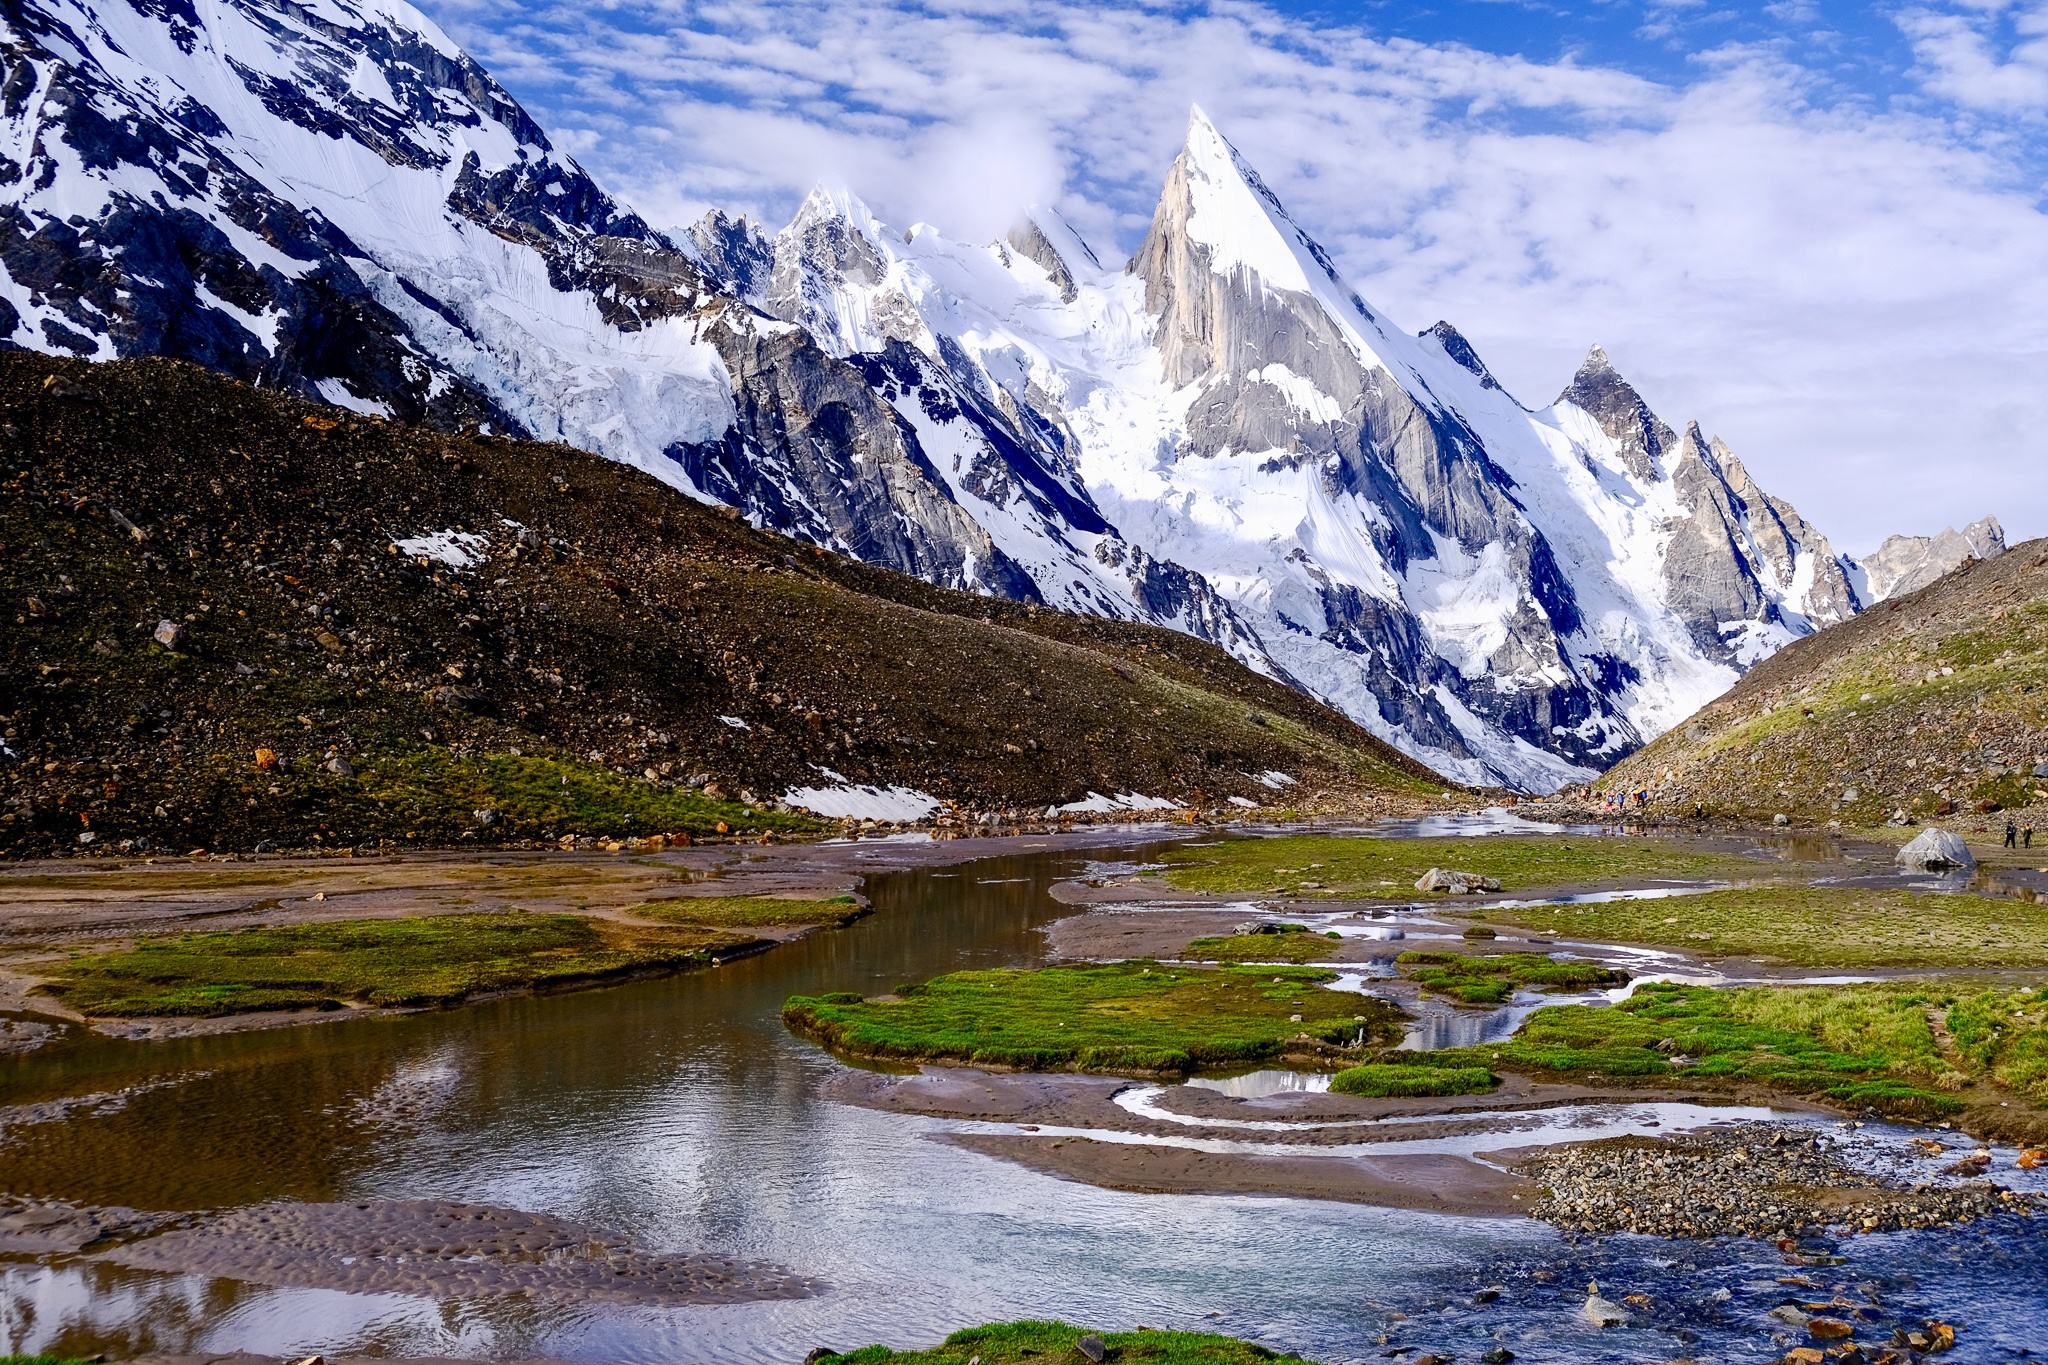 k2 trek mountains of pakistan